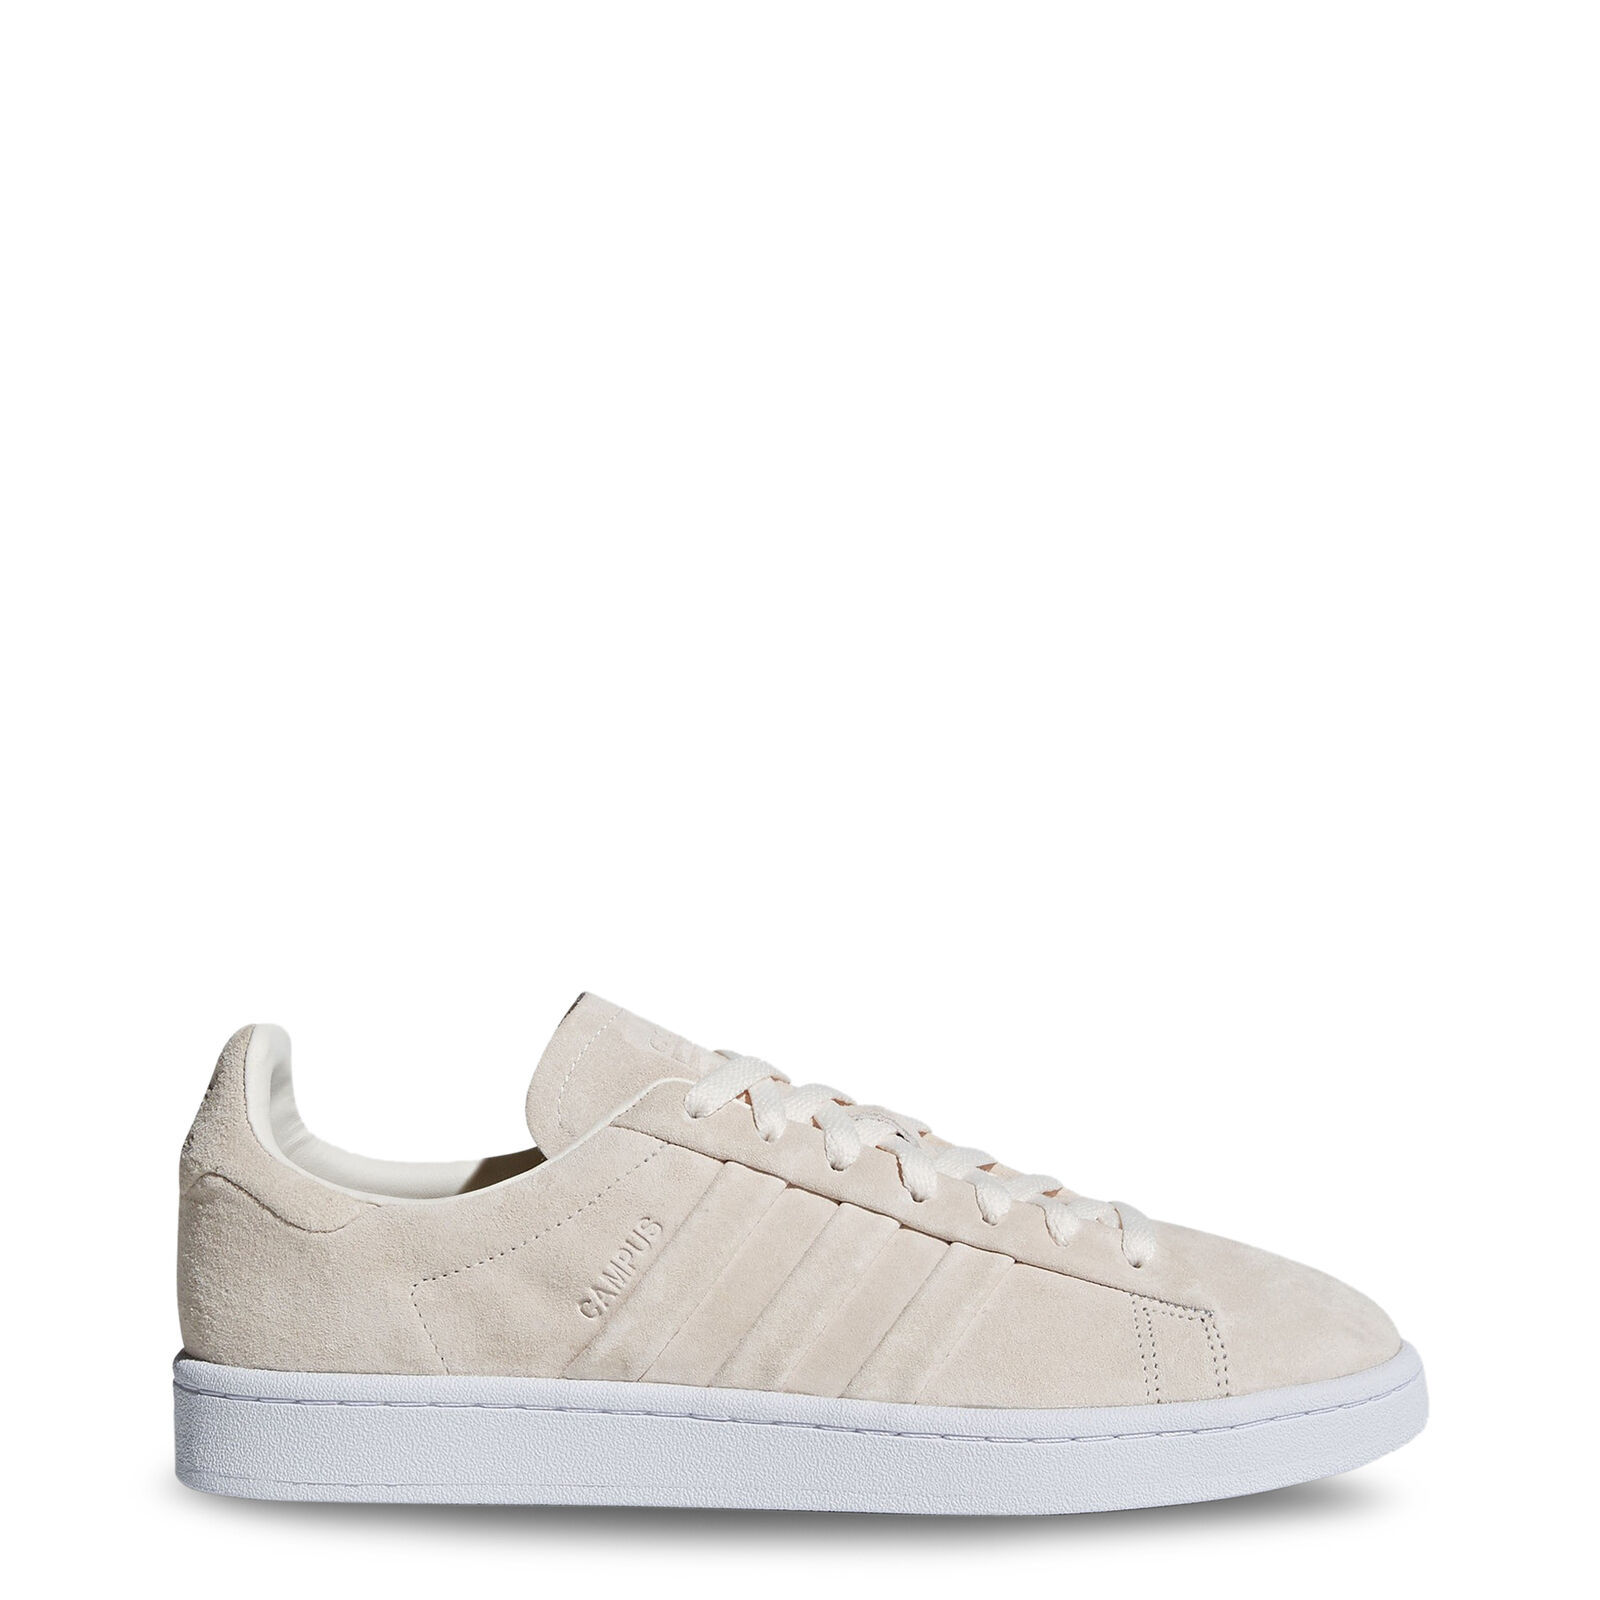 Scarpe Adidas Donna CAMPUS, Sneakers Bianco